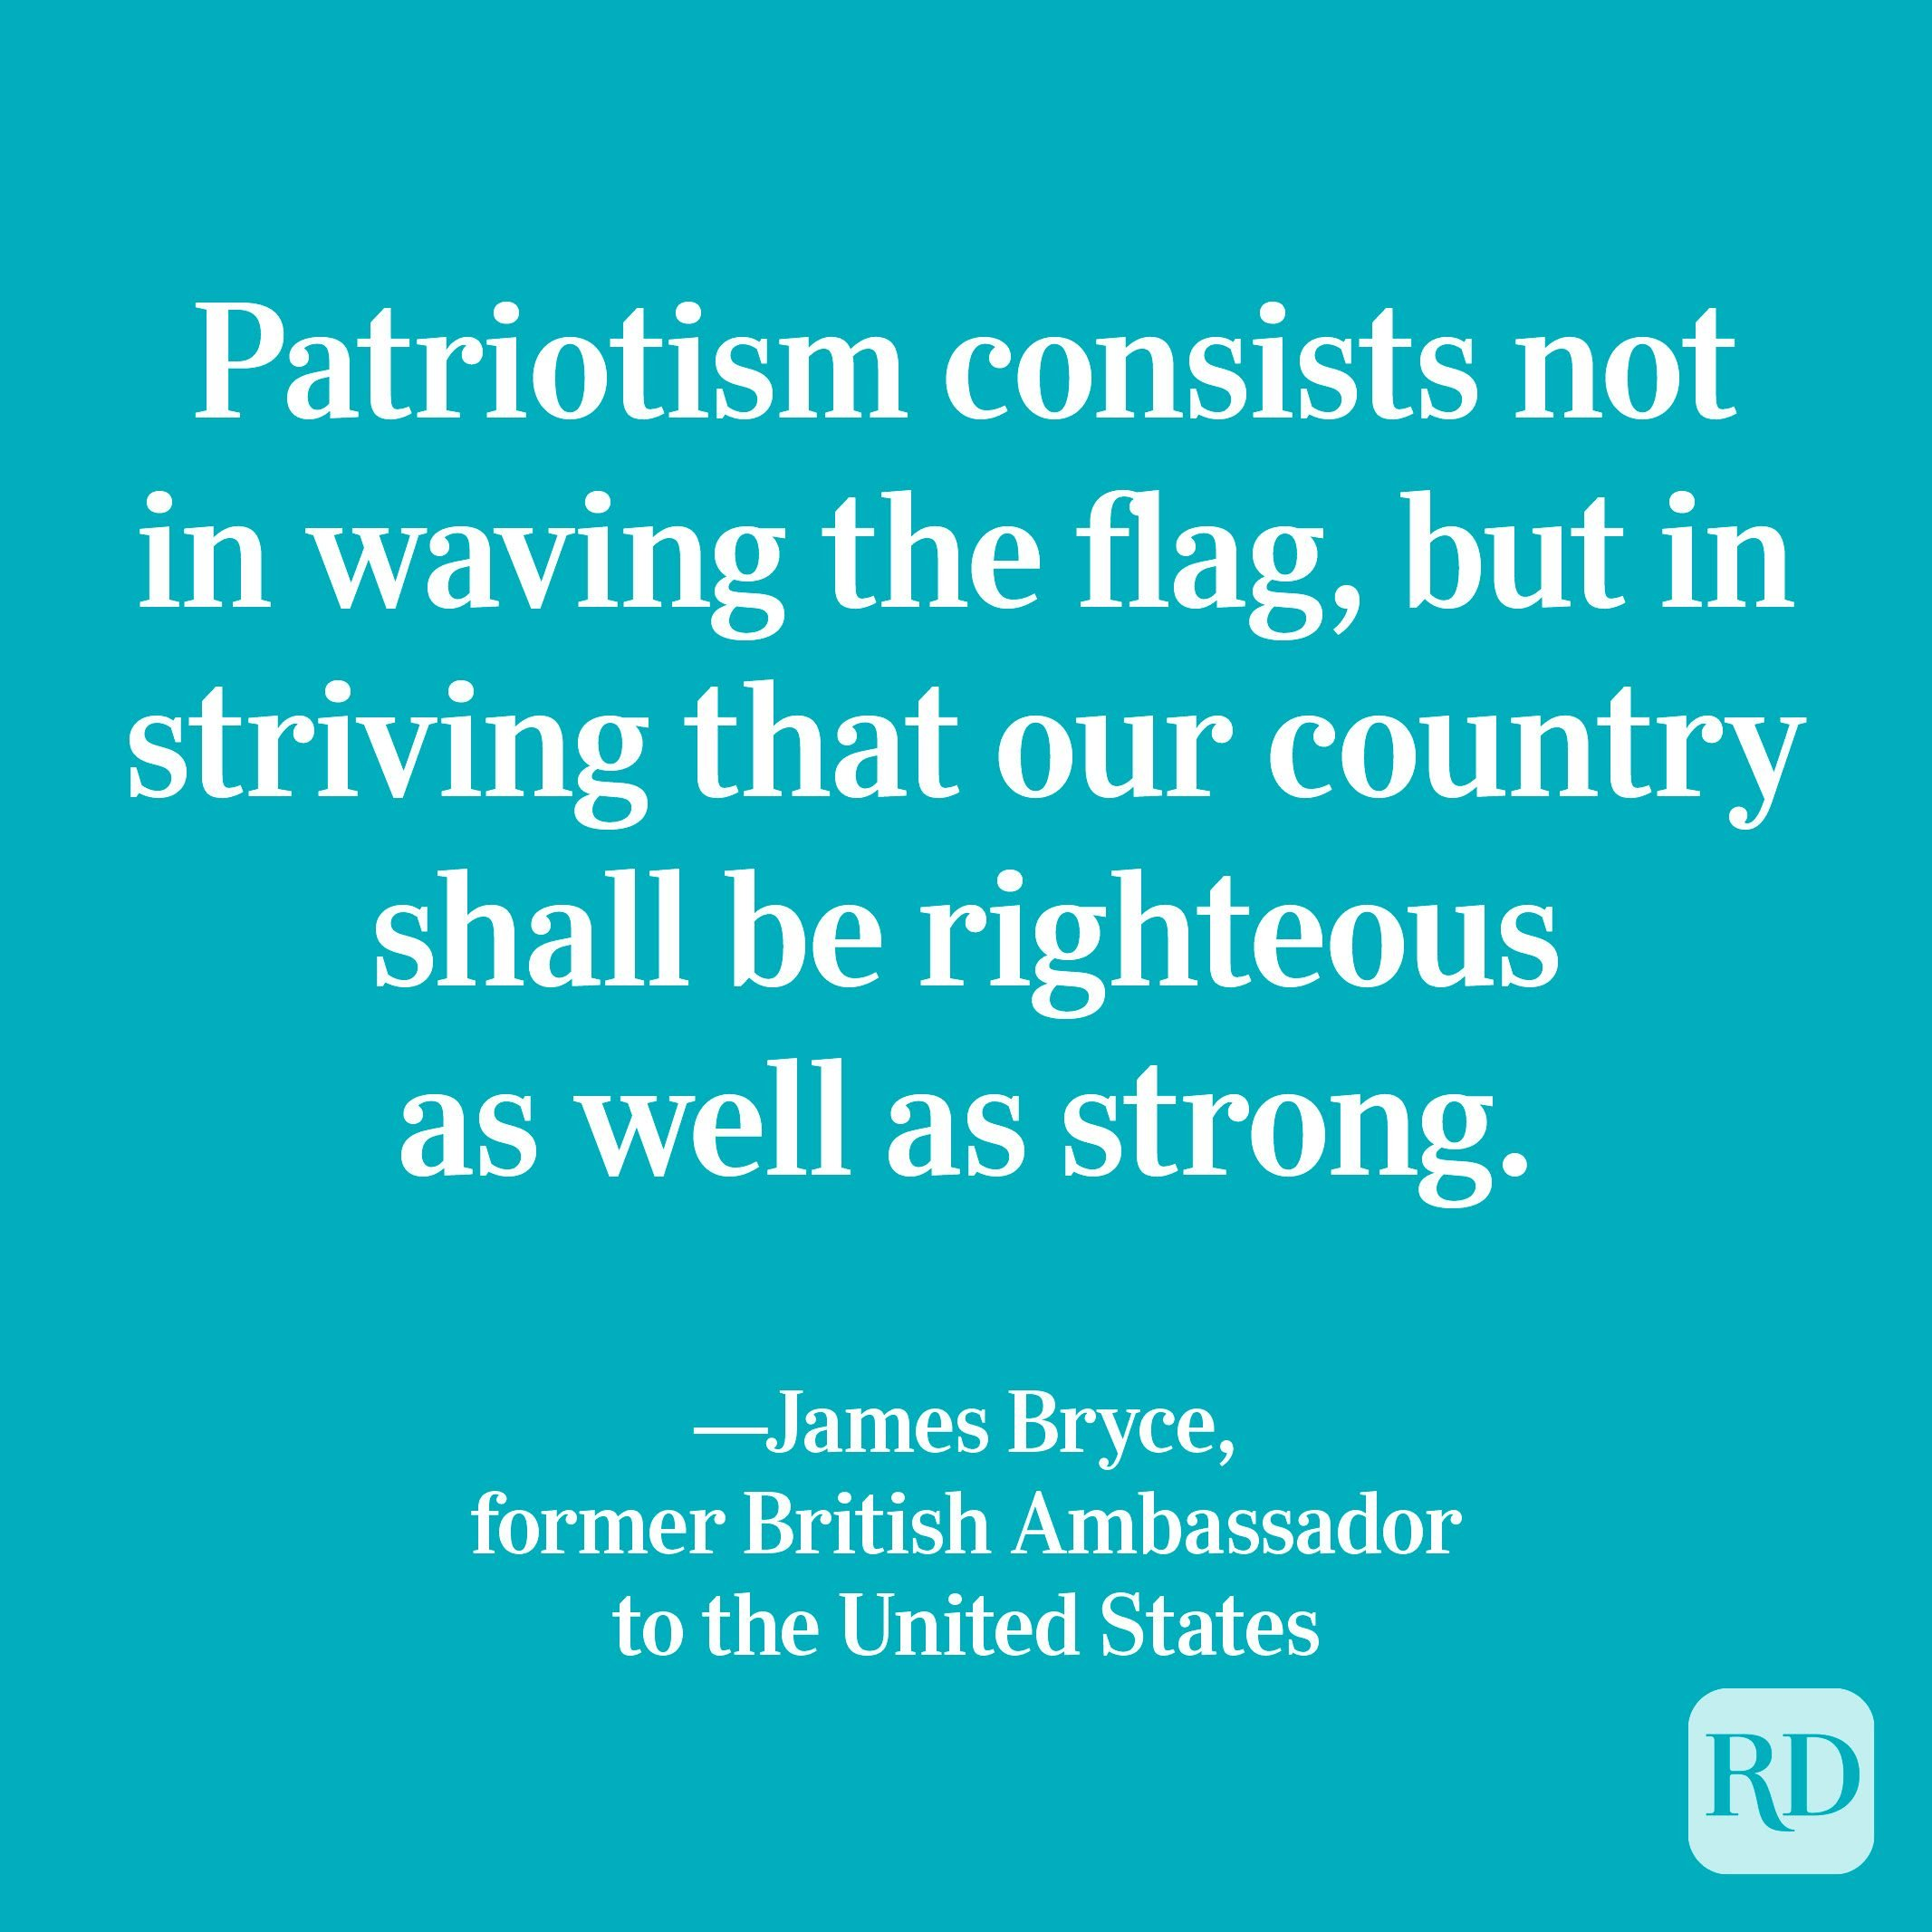 """""""Patriotism consists not in waving the flag, but in striving that our country shall be righteous as well as strong."""" —James Bryce, former British Ambassador to the United States"""